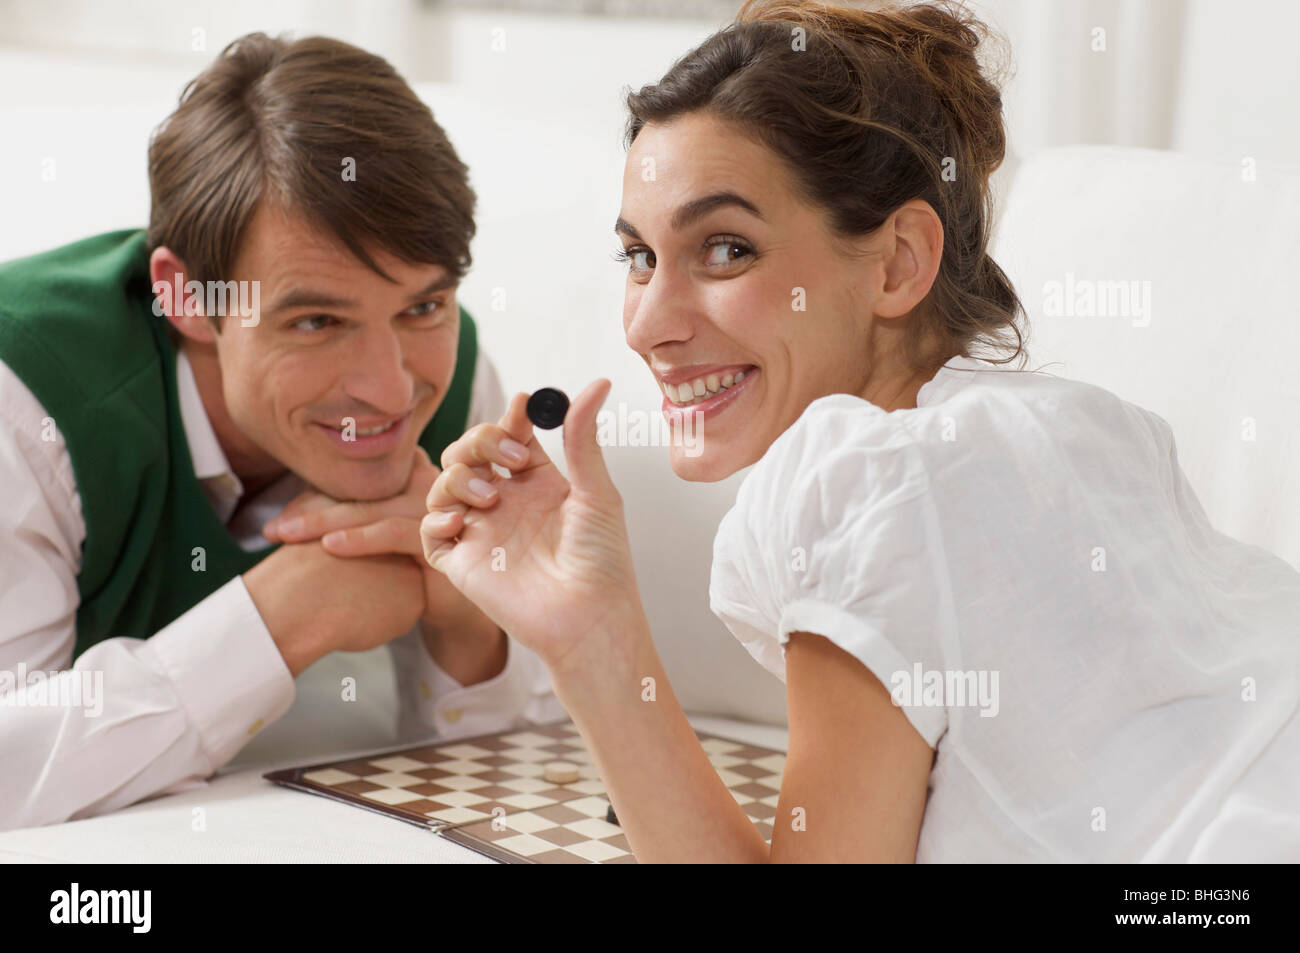 draughts for lovers - Stock Image